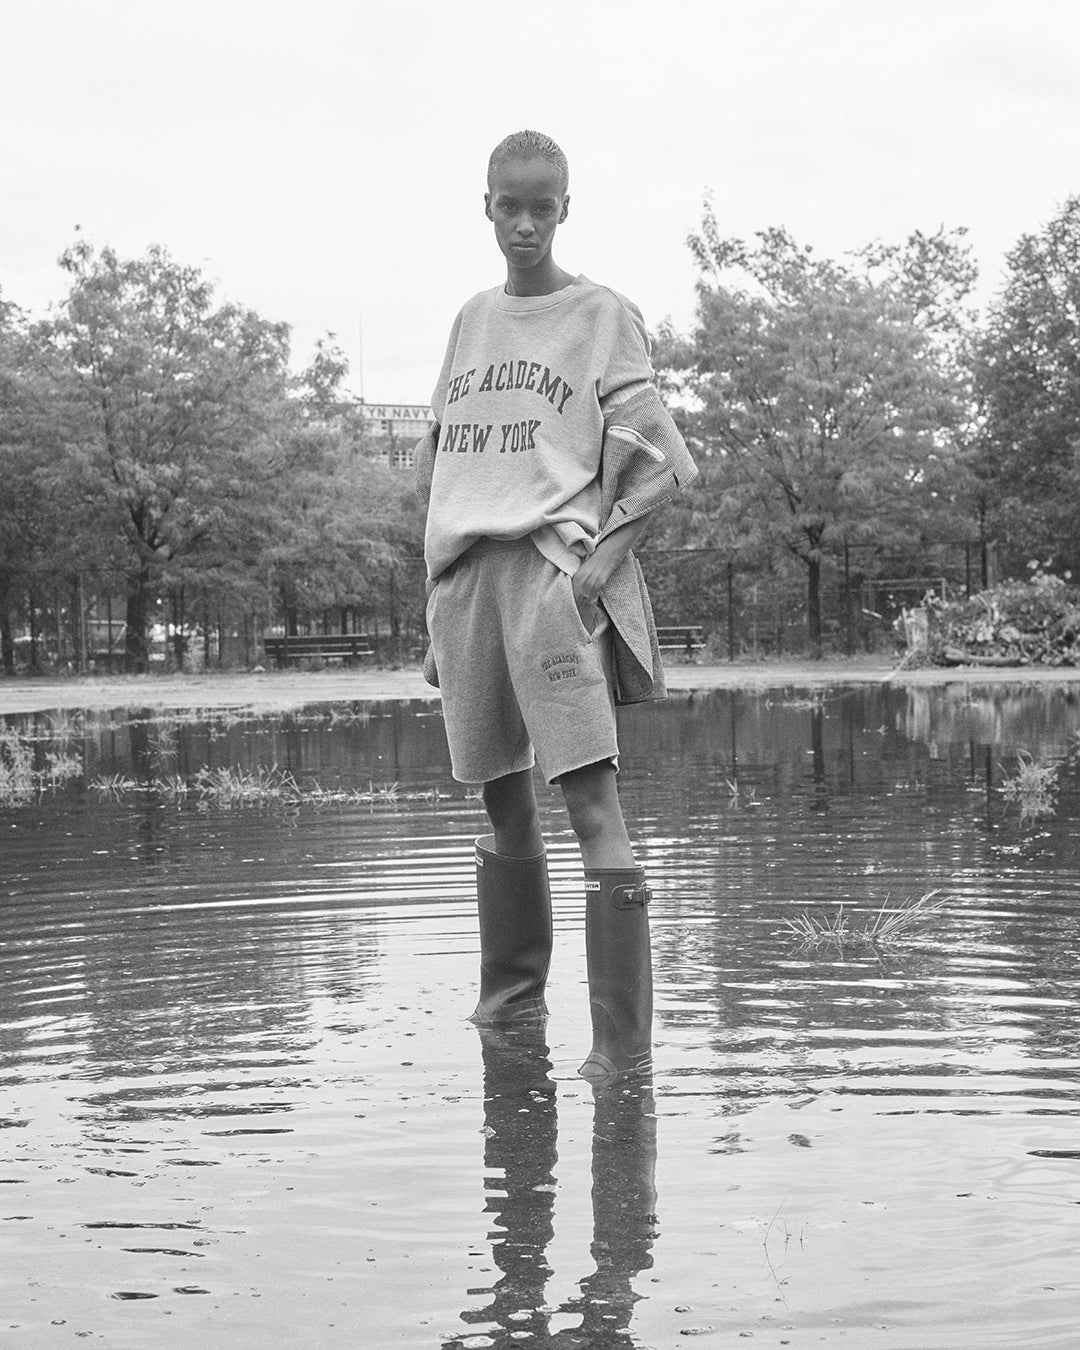 The Academy New York | Spring Summer 21 Collection